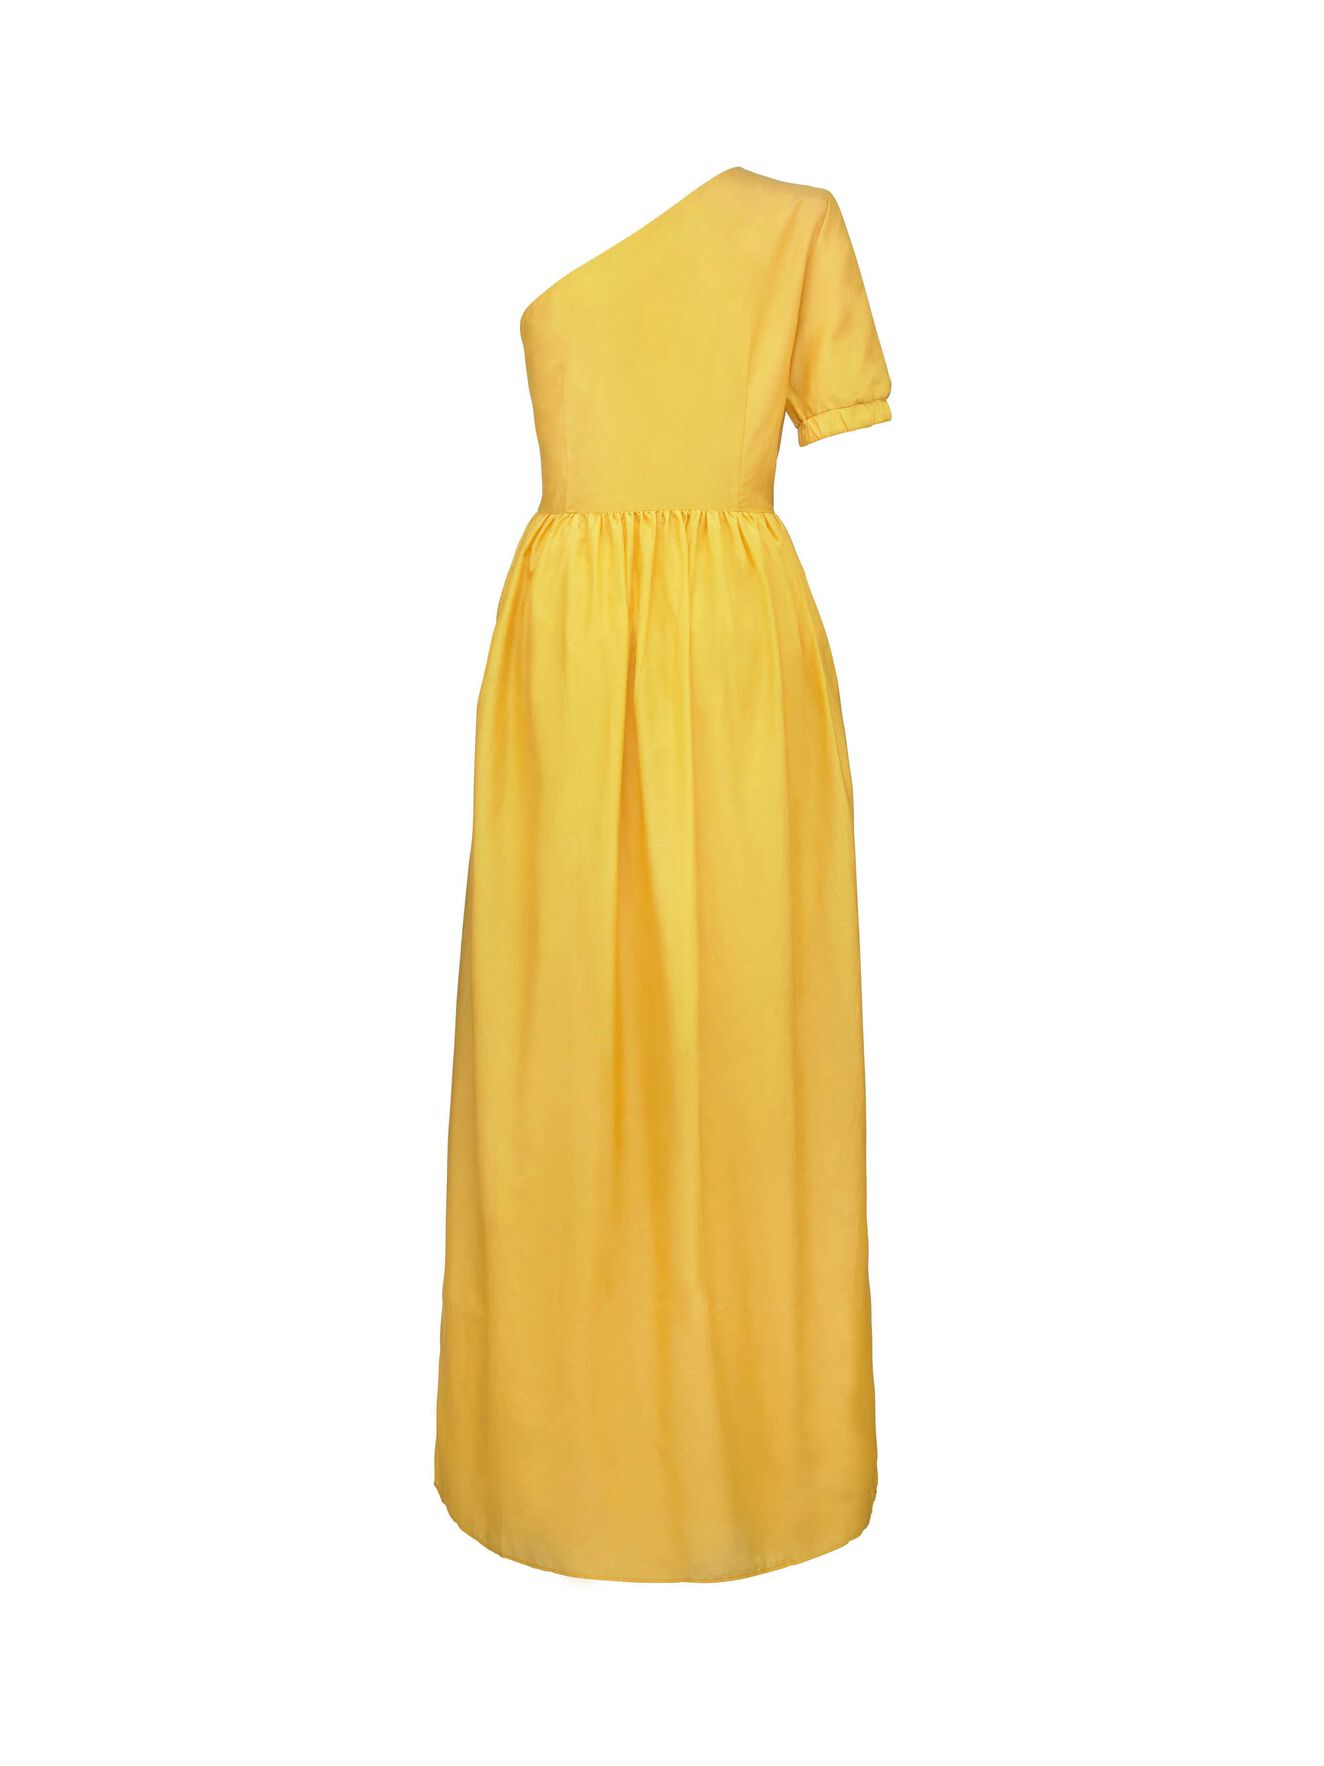 Abri Dress in Yellow from Tiger of Sweden